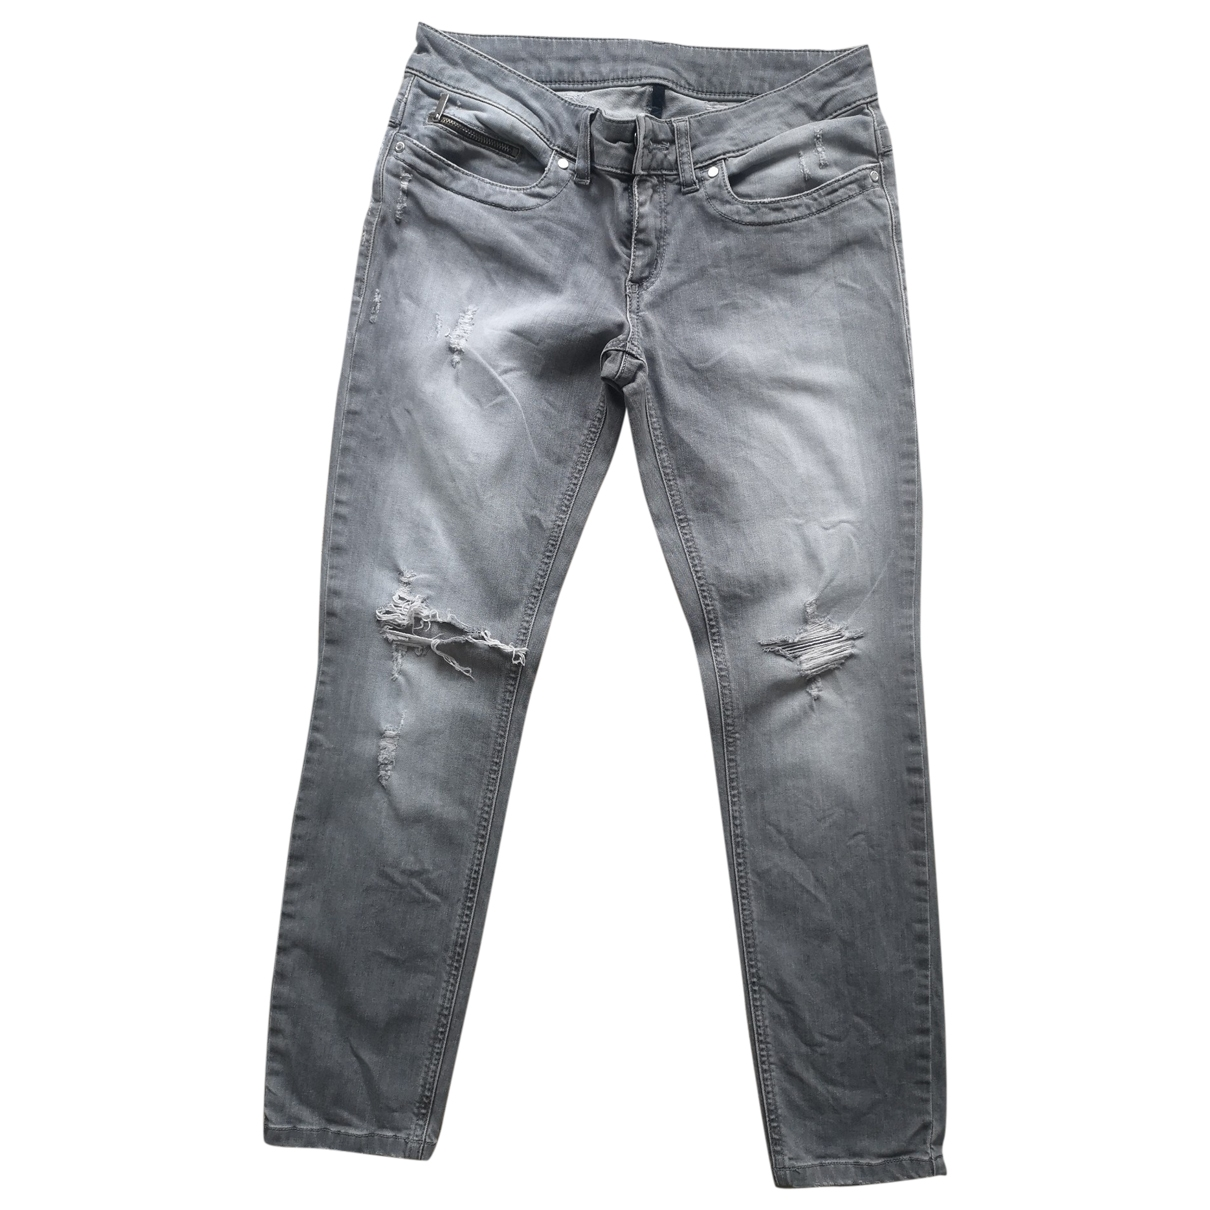 Dirk Bikkembergs \N Grey Cotton - elasthane Jeans for Women 28 US